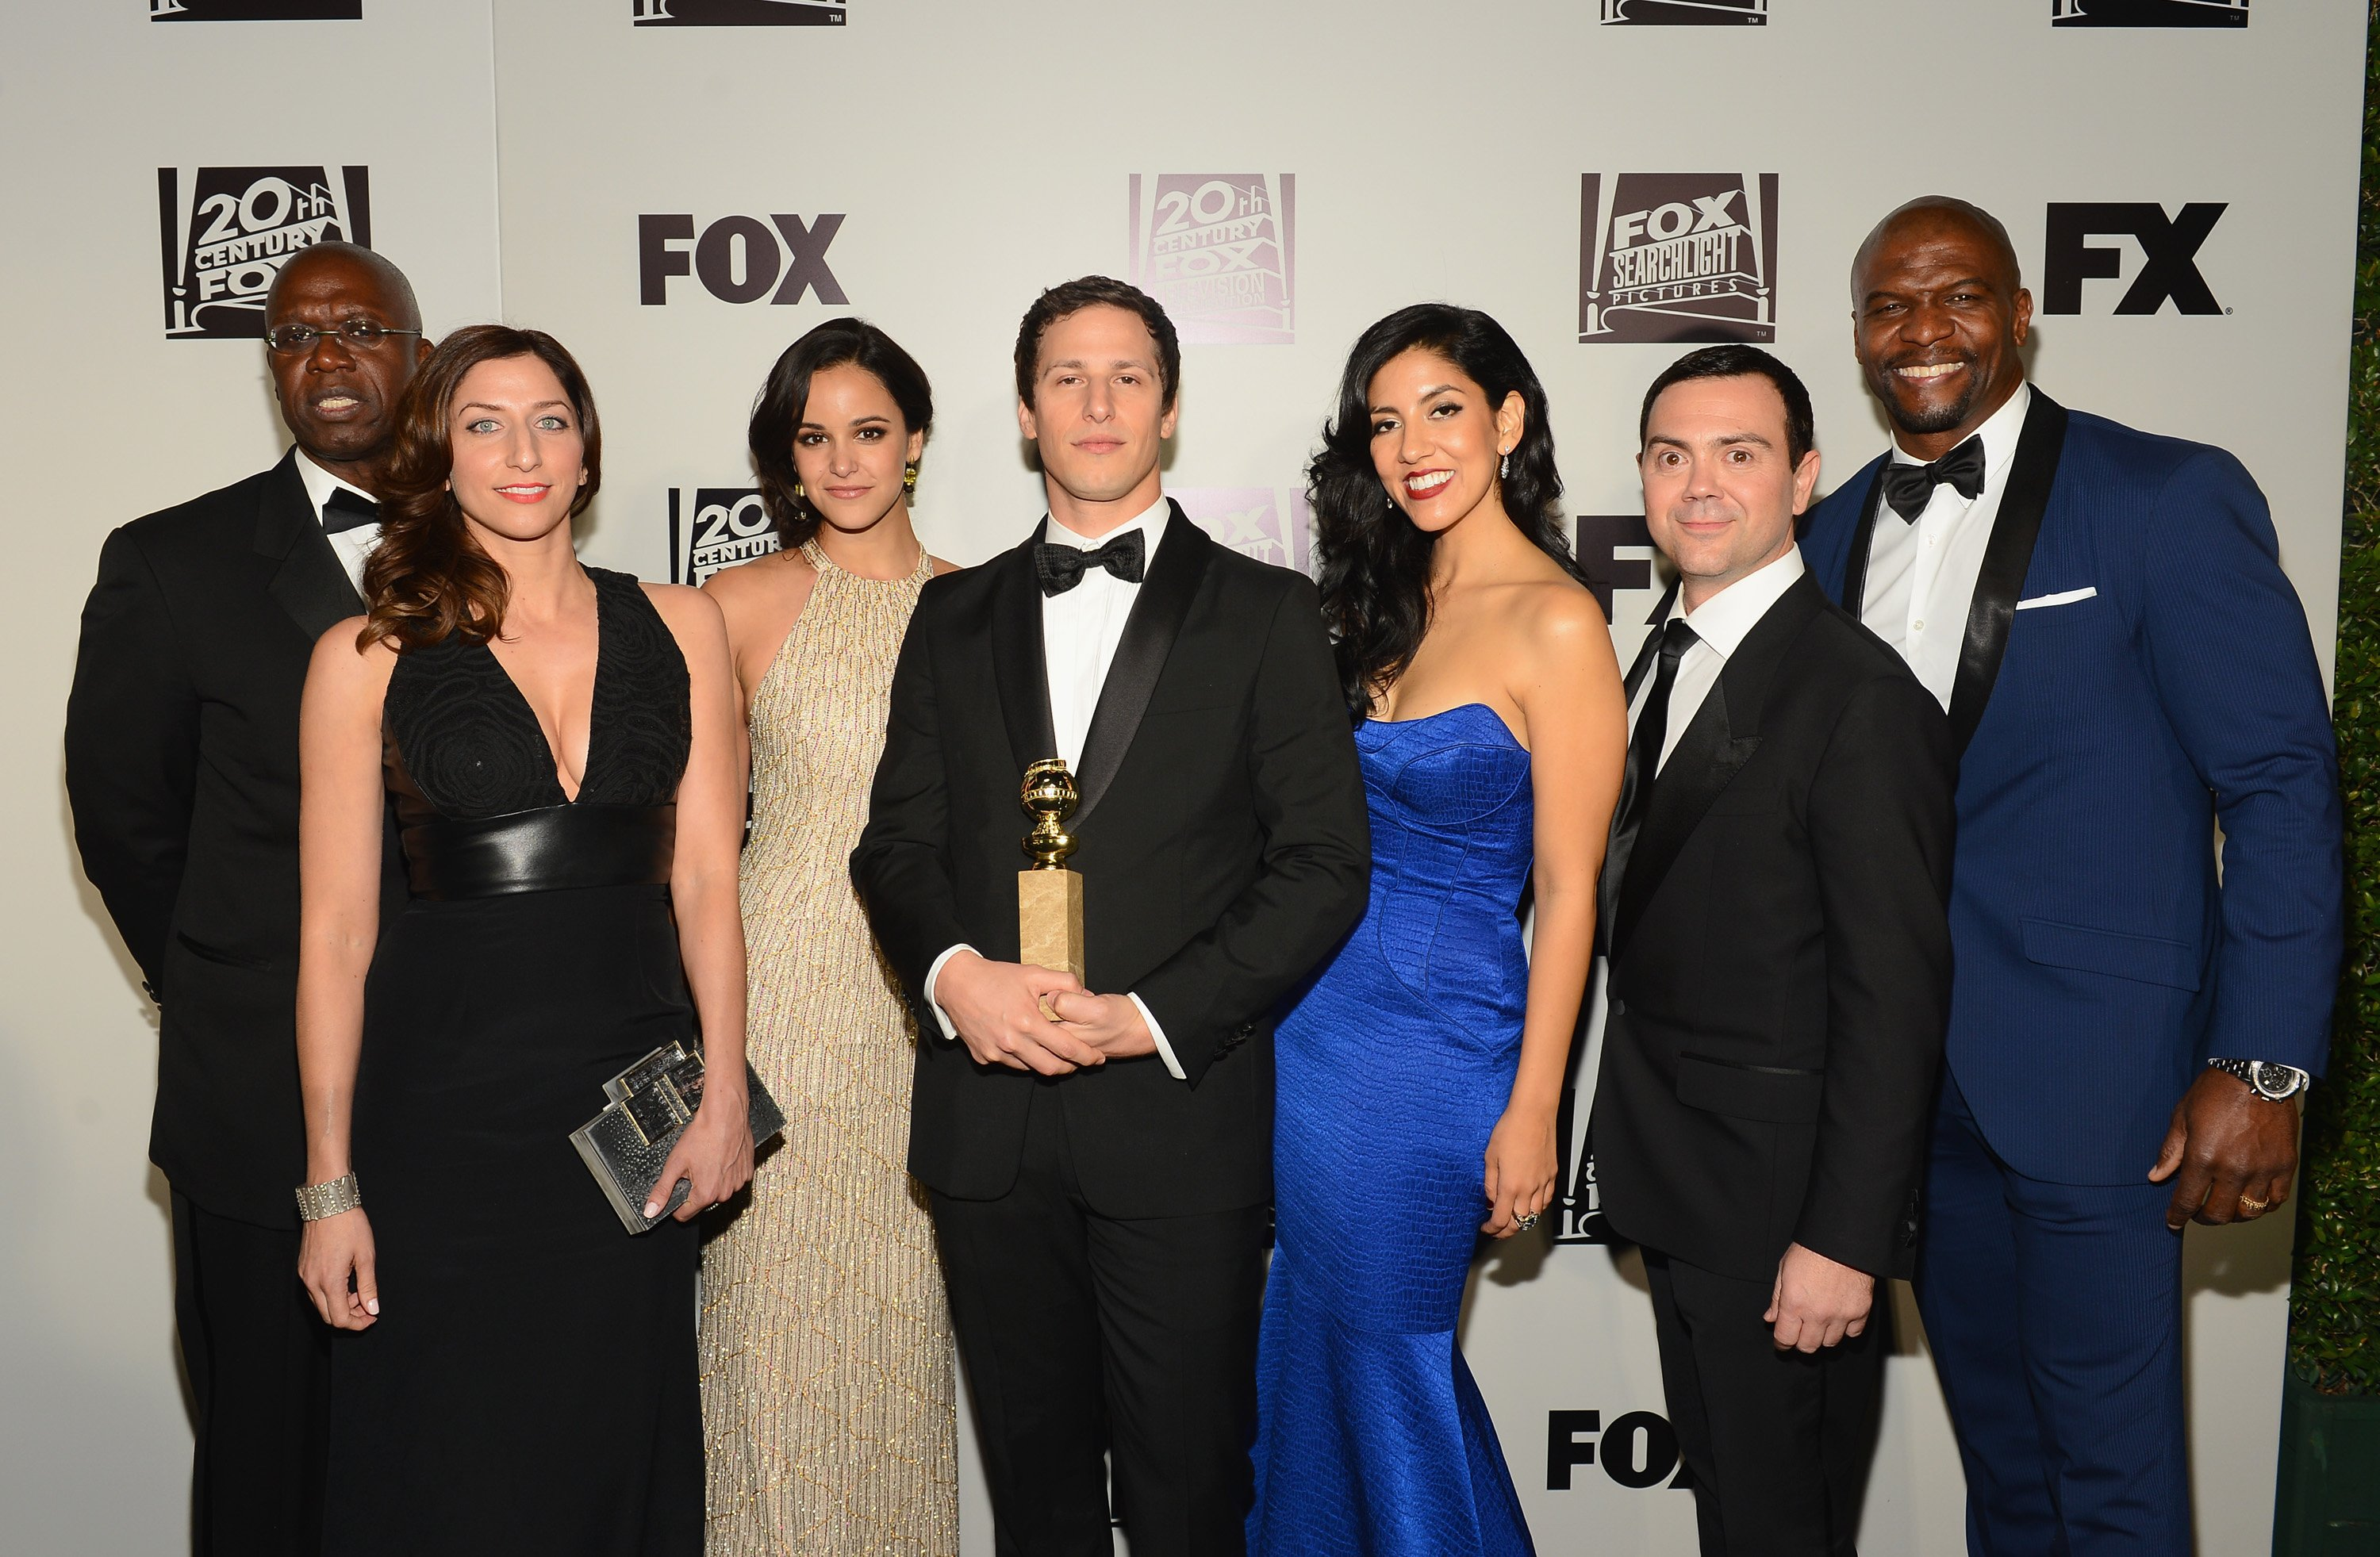 Andre Braugher, Chelsea Peretti, Melissa Fumero, Andy Samberg, Stephanie Beatriz, Joe Lo Truglio, and Terry Crews from the cast of 'Brooklyn Nine-Nine' attend the Fox And FX's 2014 Golden Globe Awards Party on January 12, 2014 in Beverly Hills, California | Photo: Getty Images